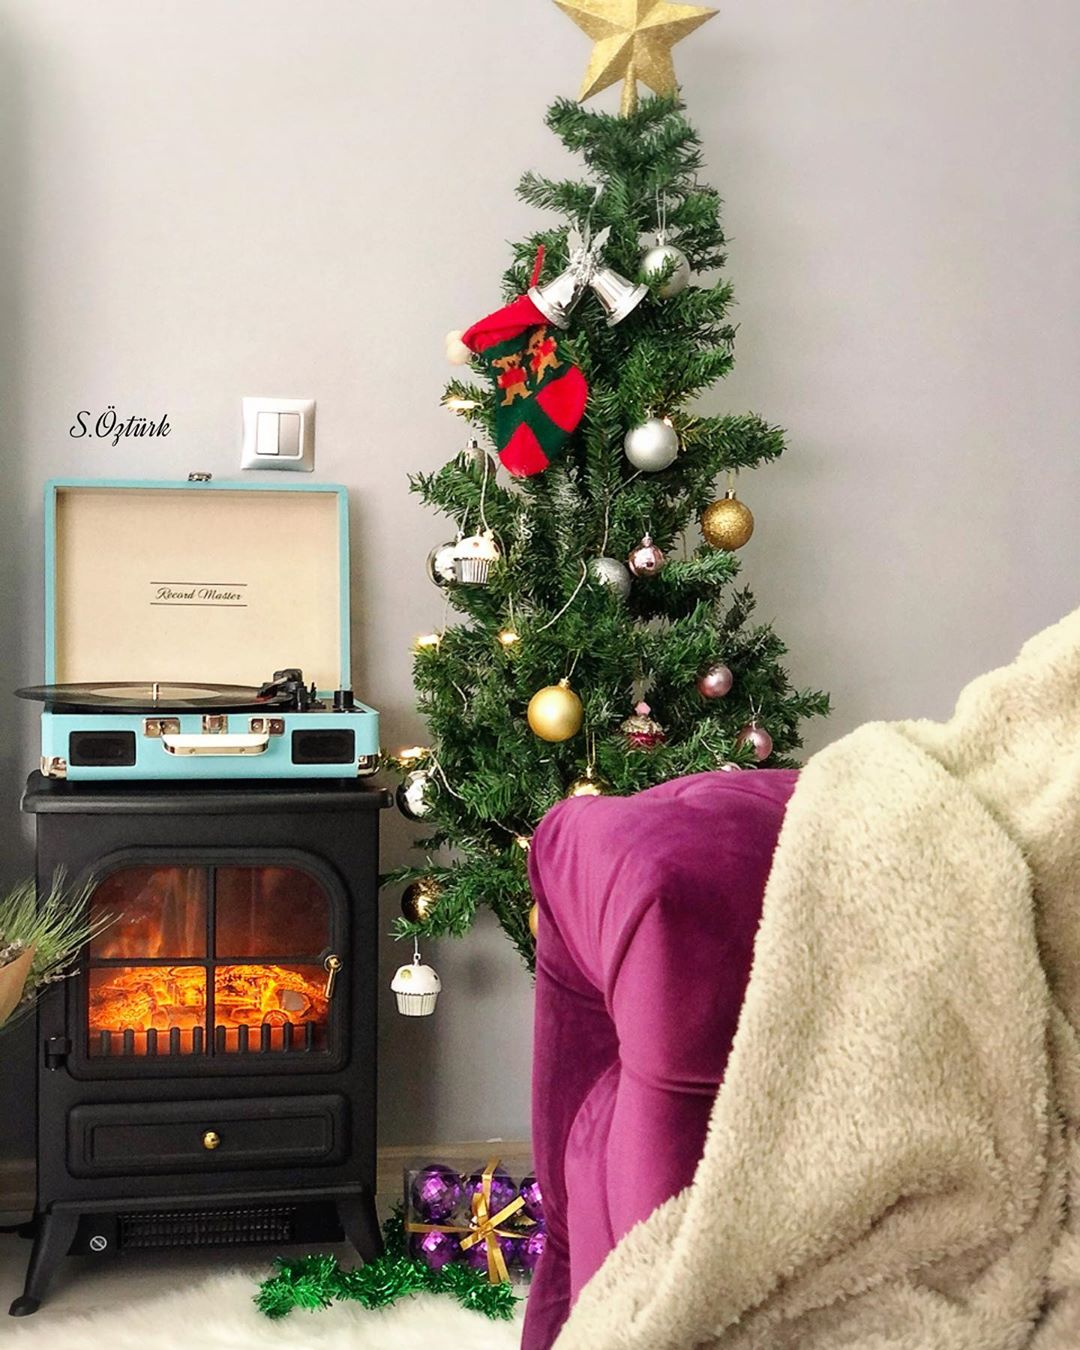 Fireplace Decorations for Christmas Home Decor 000 (4)